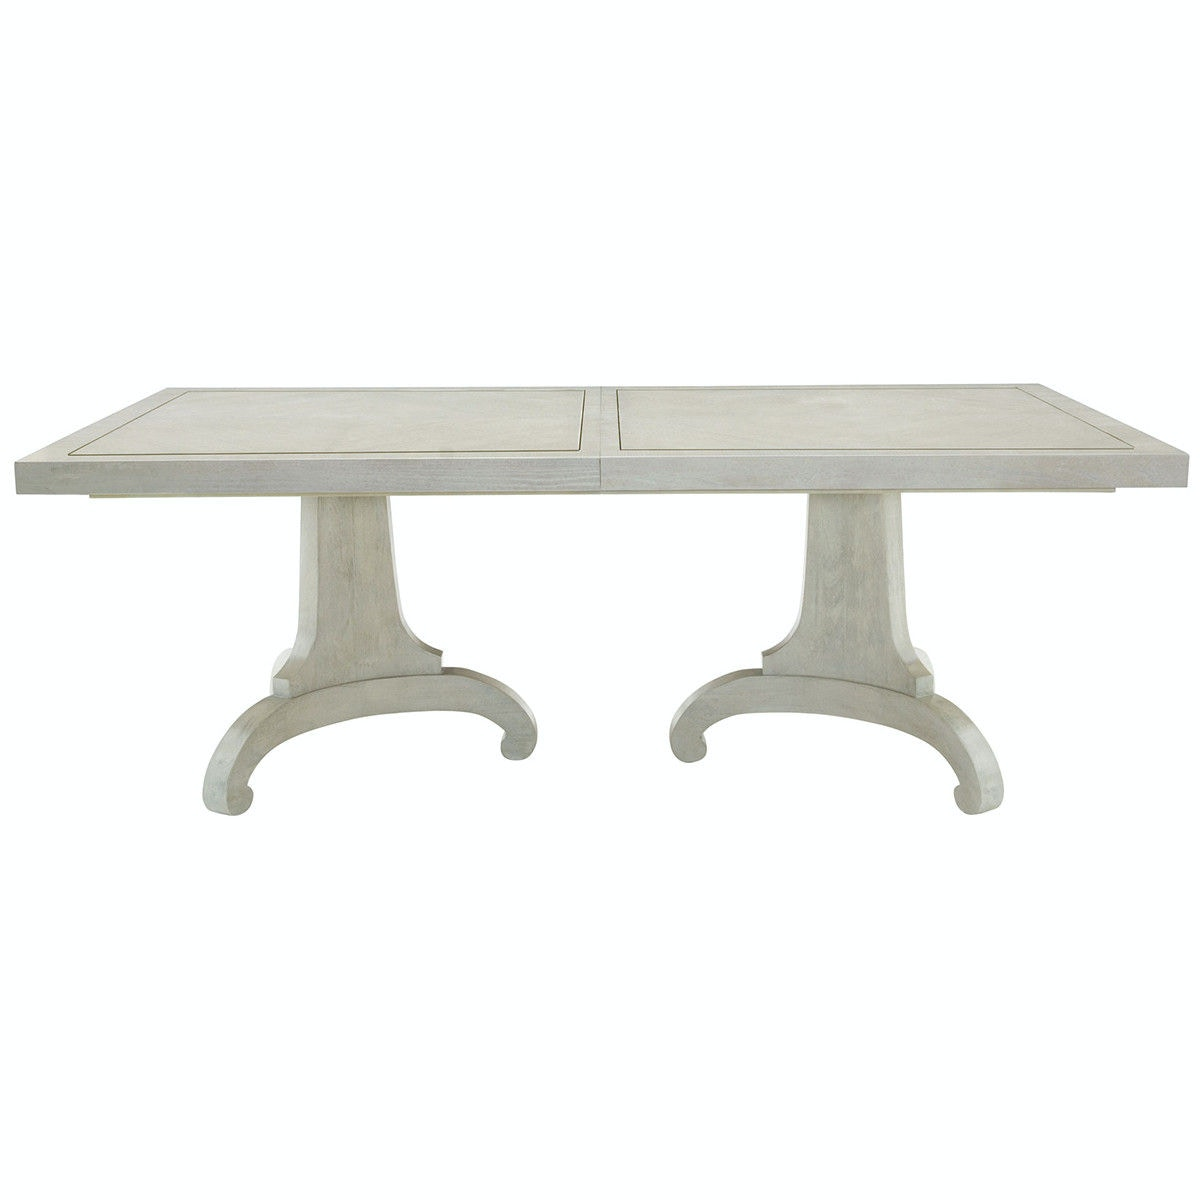 criteria double pedestal dining table kt47639